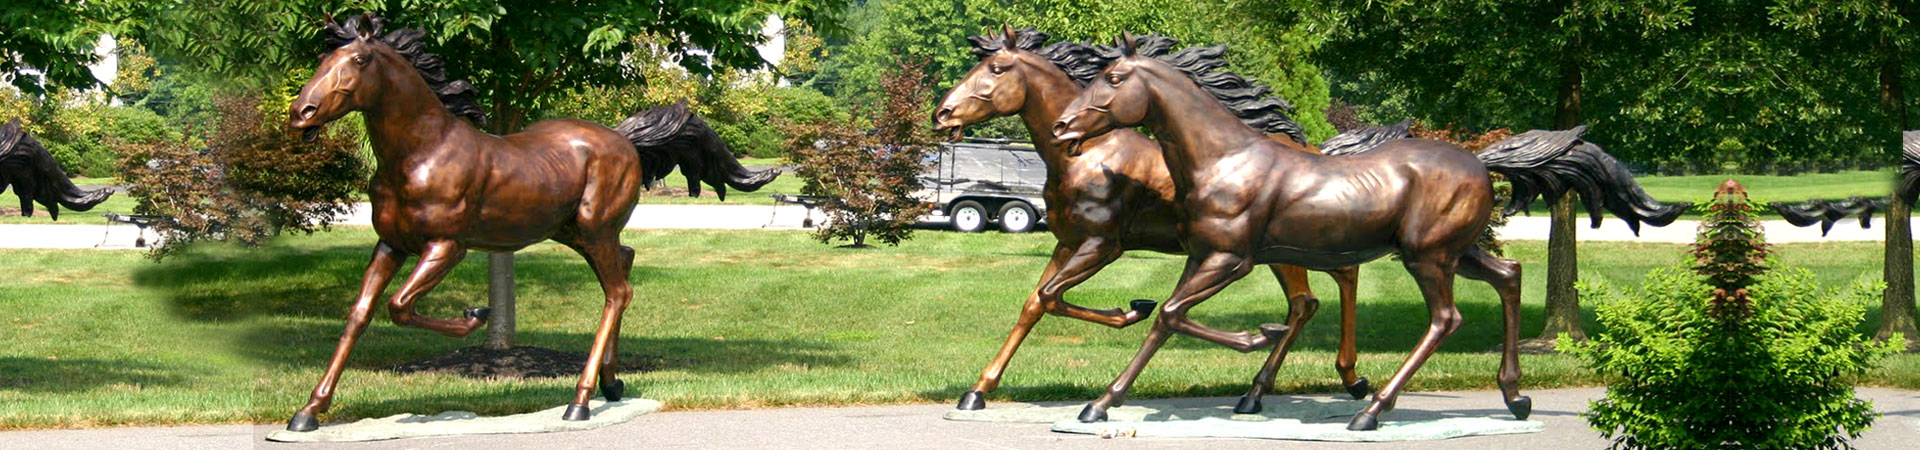 outdoor life size horse Statues/sculptures for sale